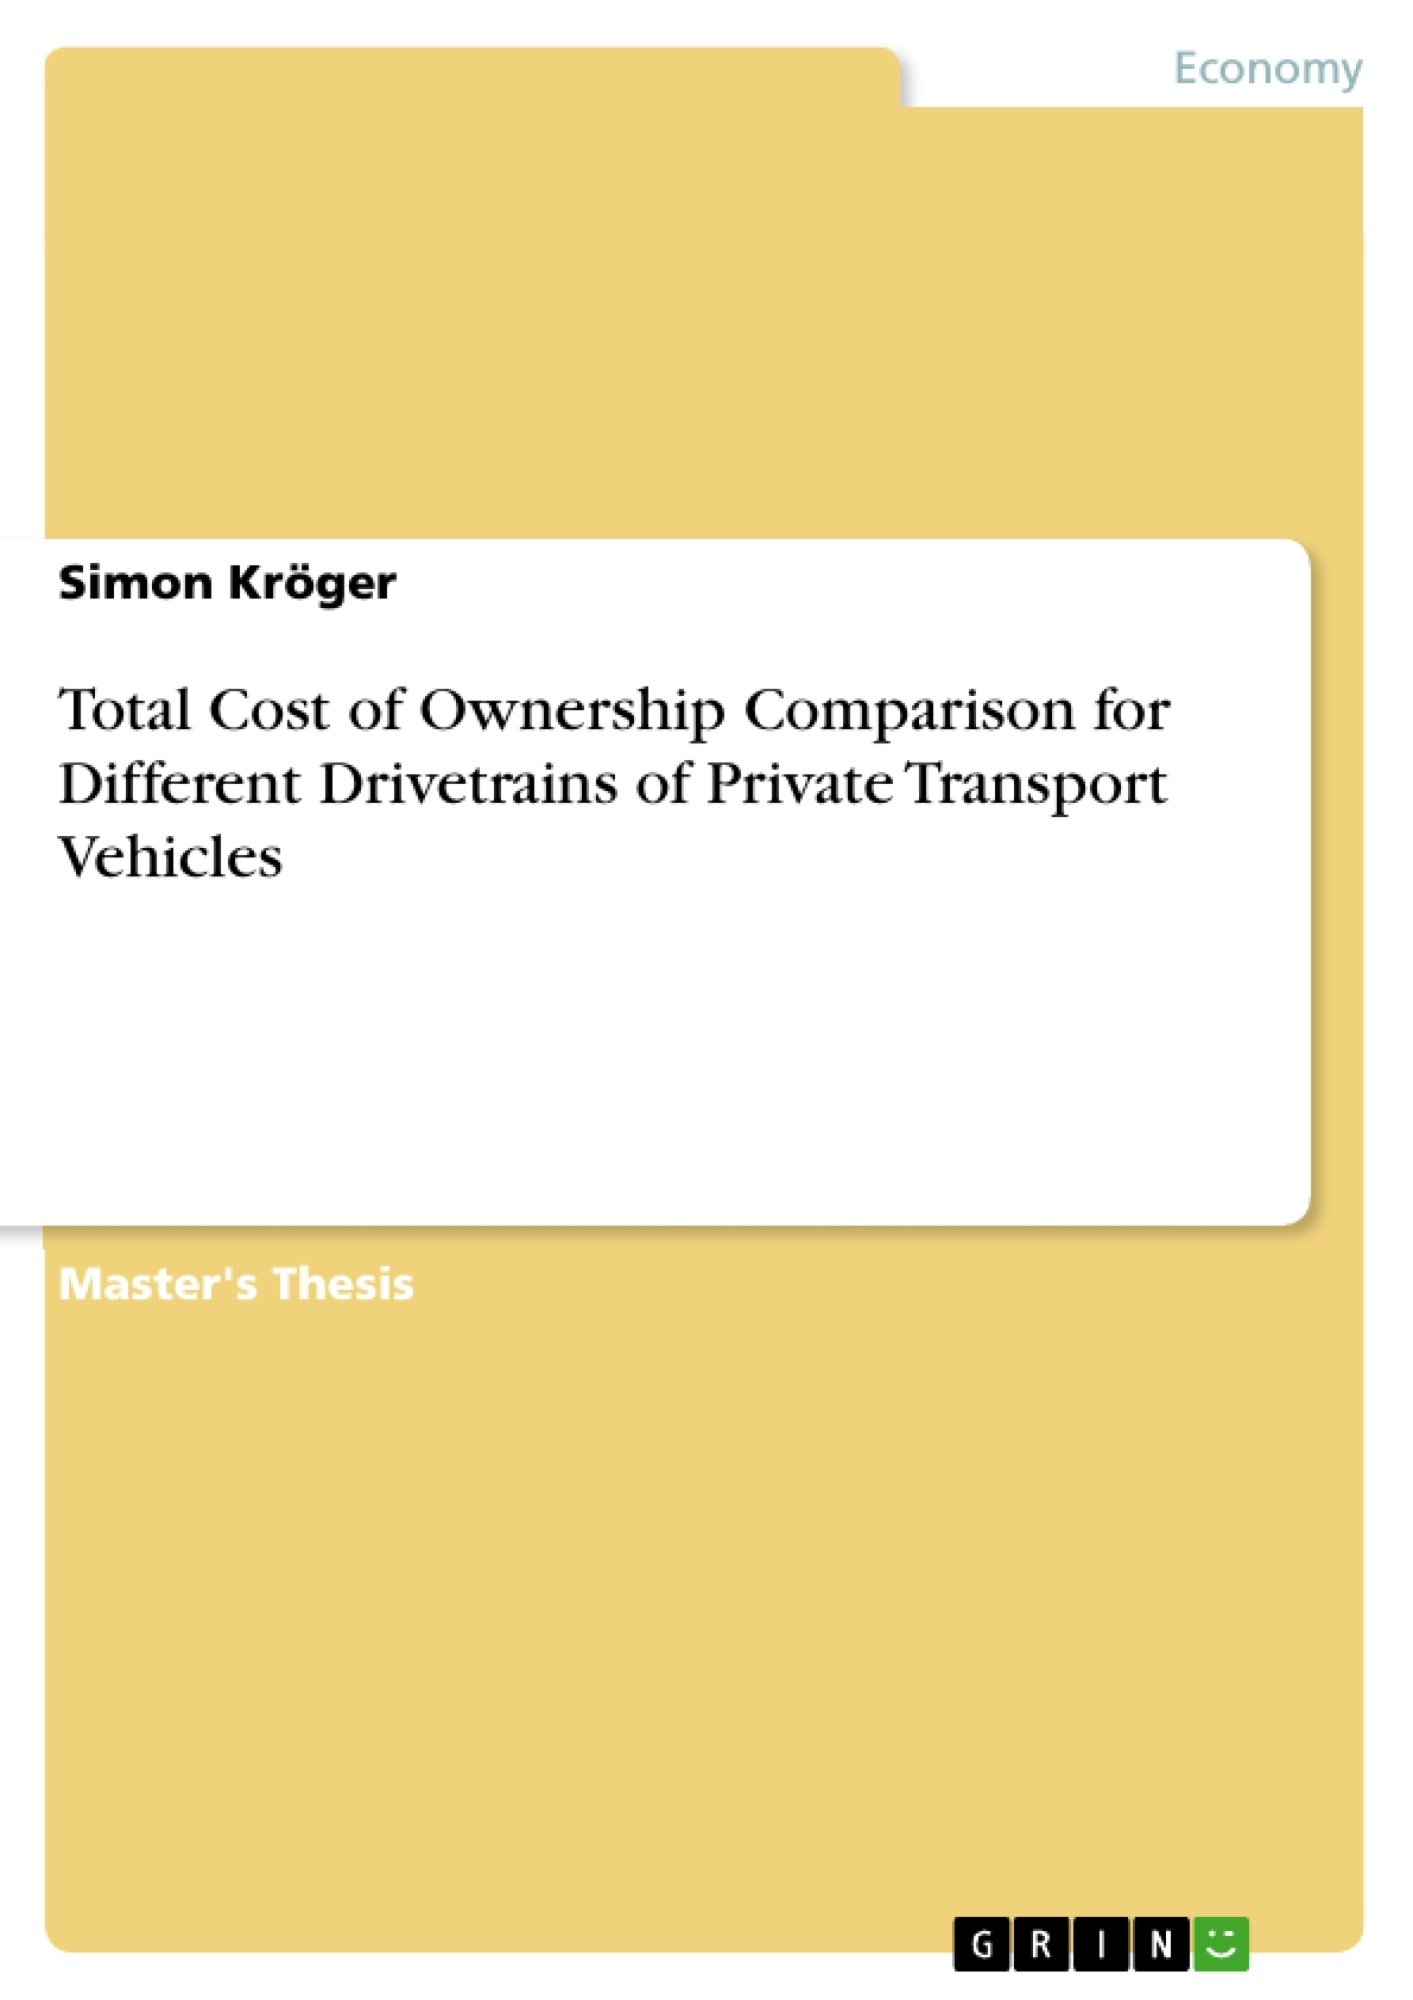 Title: Total Cost of Ownership Comparison for Different Drivetrains of Private Transport Vehicles